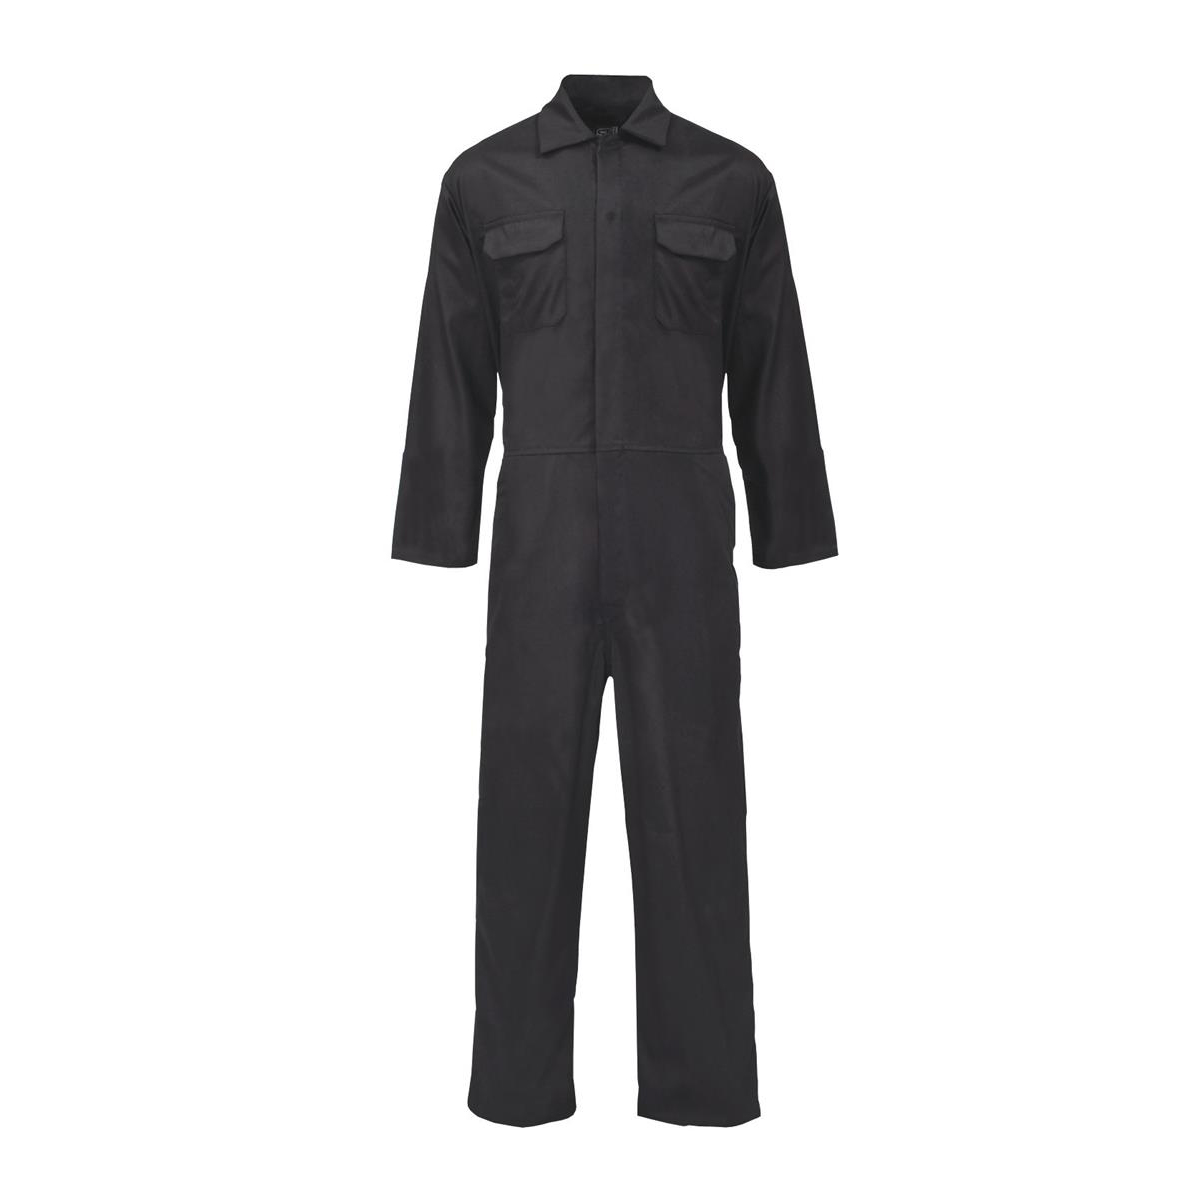 Coveralls / Overalls Coverall Basic with Popper Front Opening Polycotton XXXLarge Black Ref RPCBSBL52 *Approx 3 Day Leadtime*